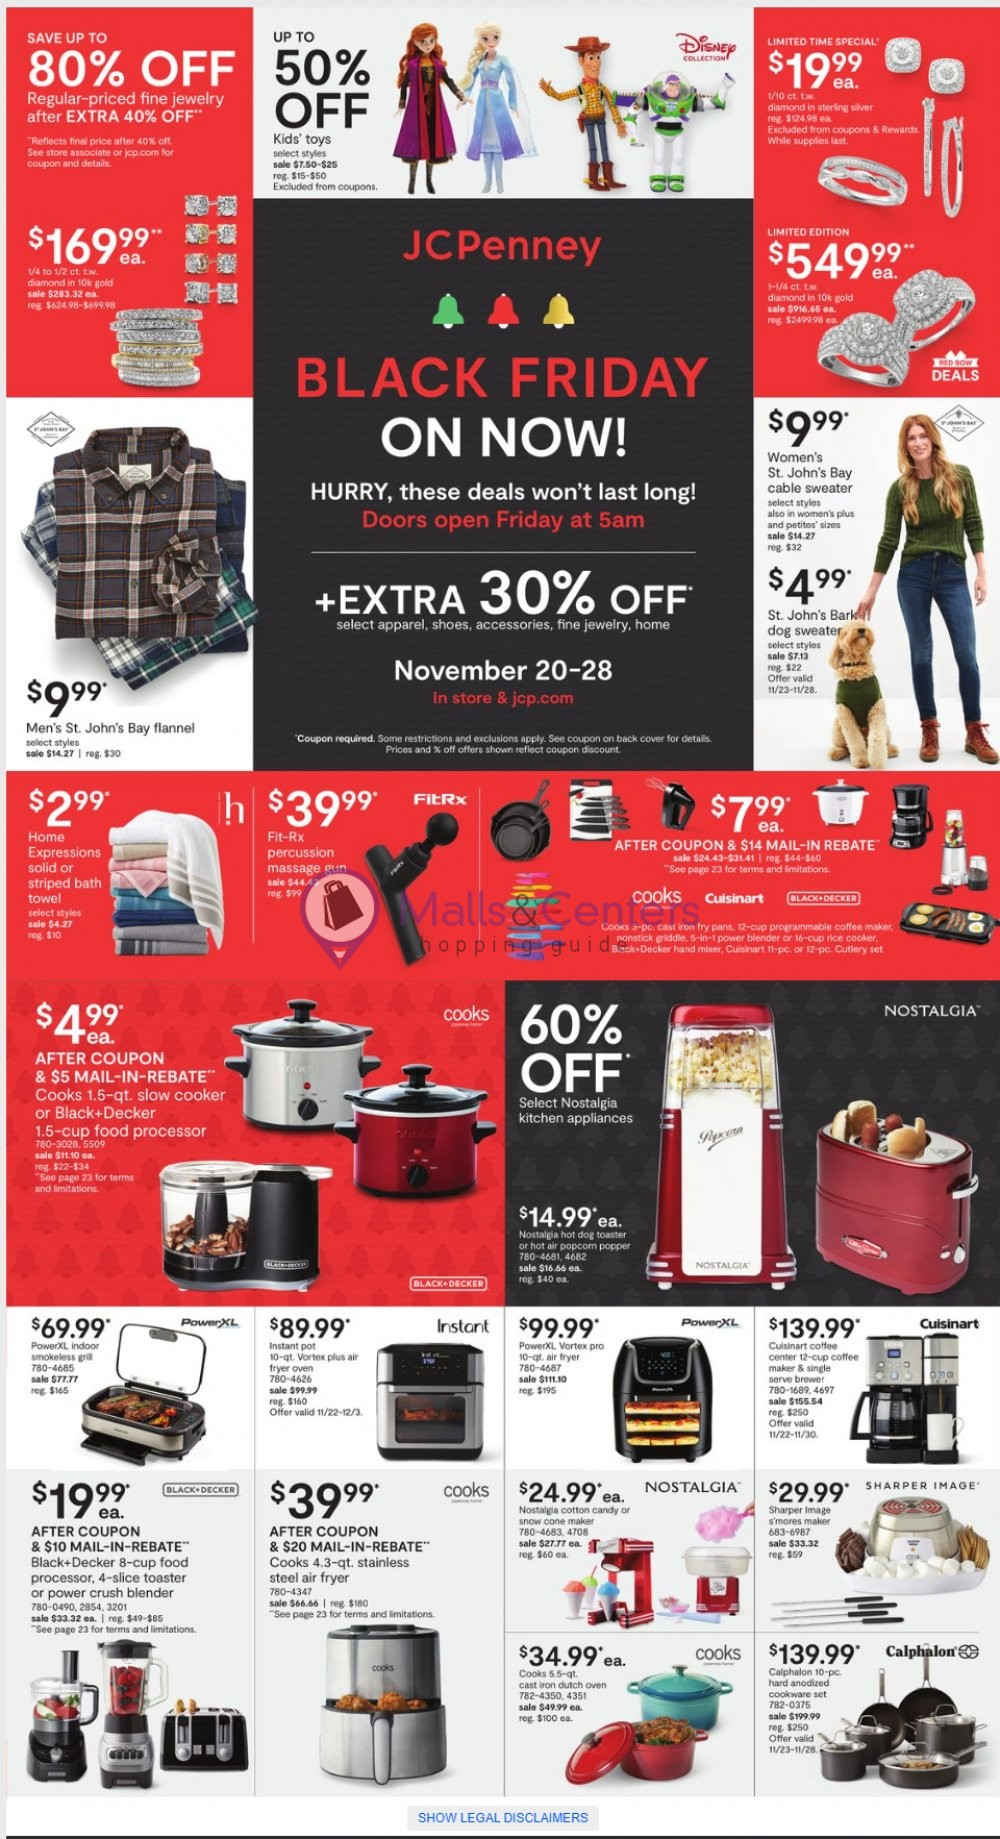 weekly ads JCPenney - page 1 - mallscenters.com